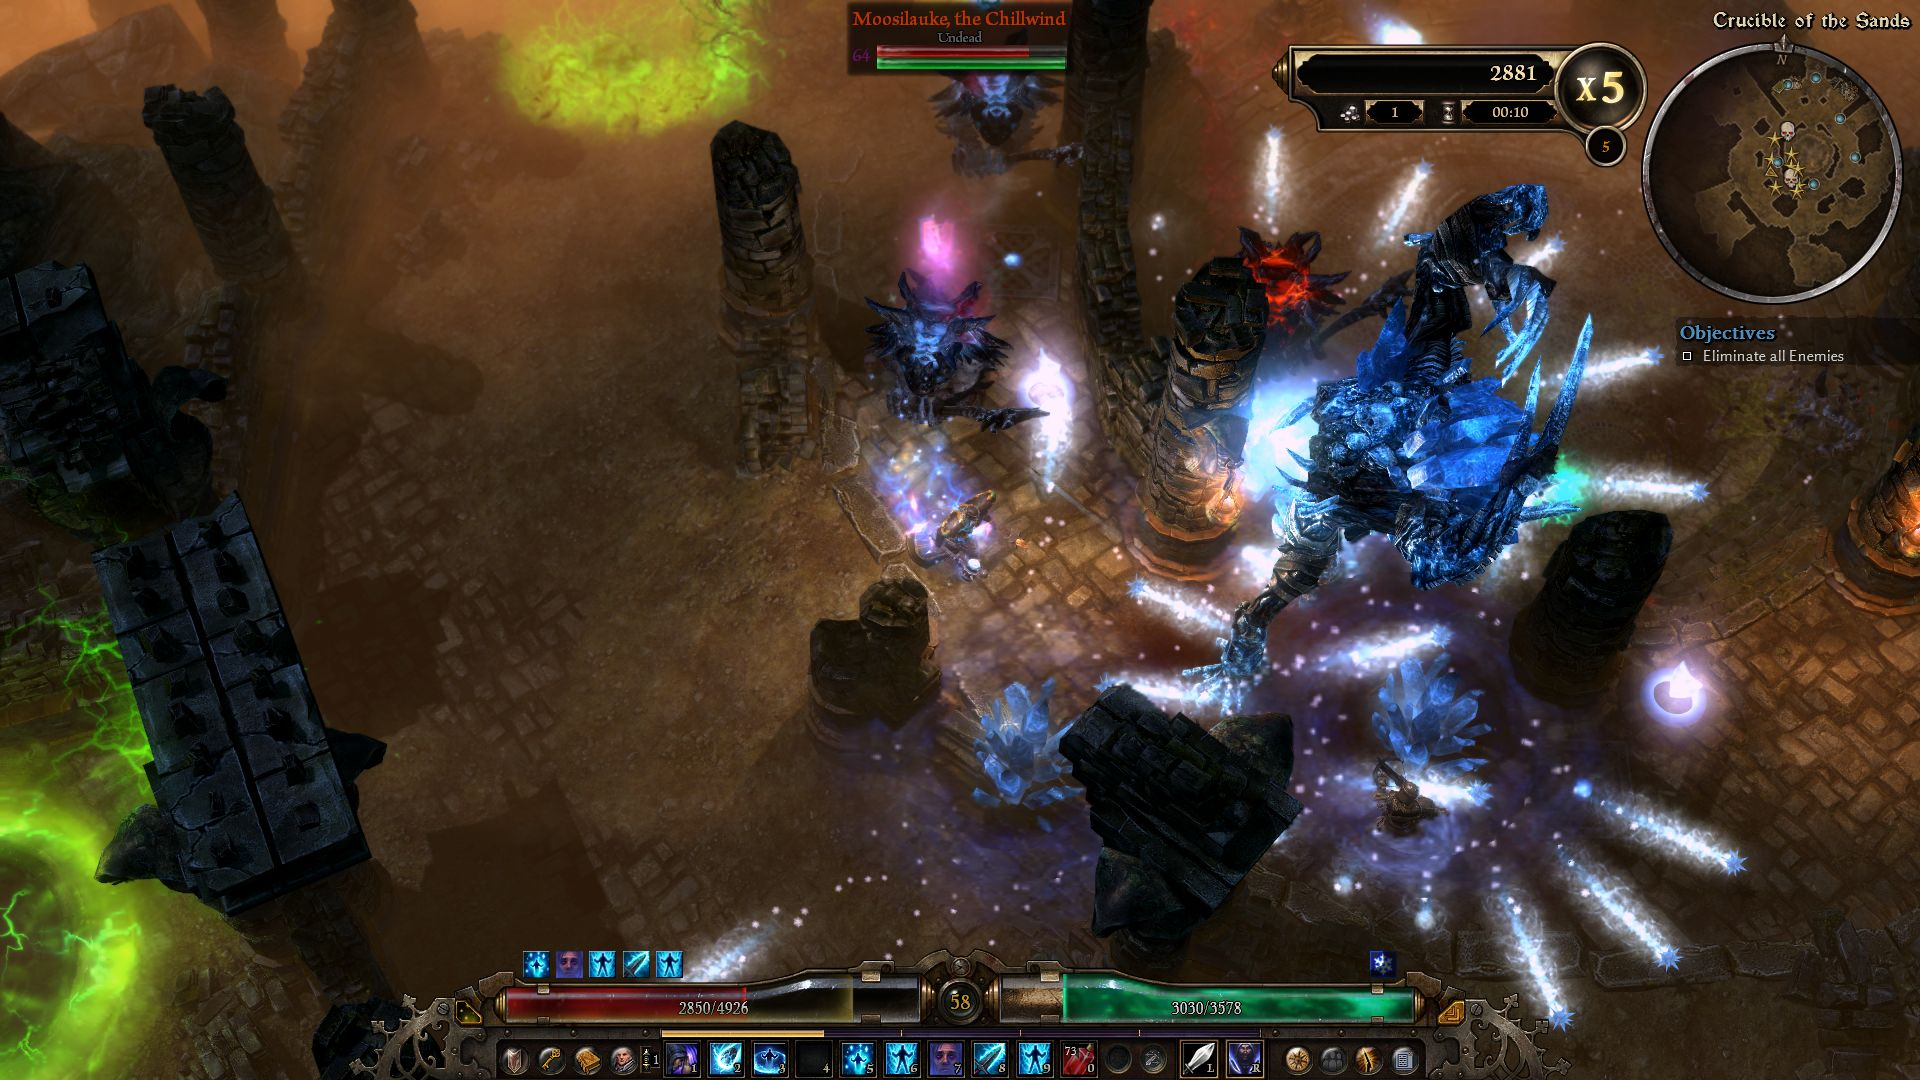 Grim Dawn Crucible Download For Free